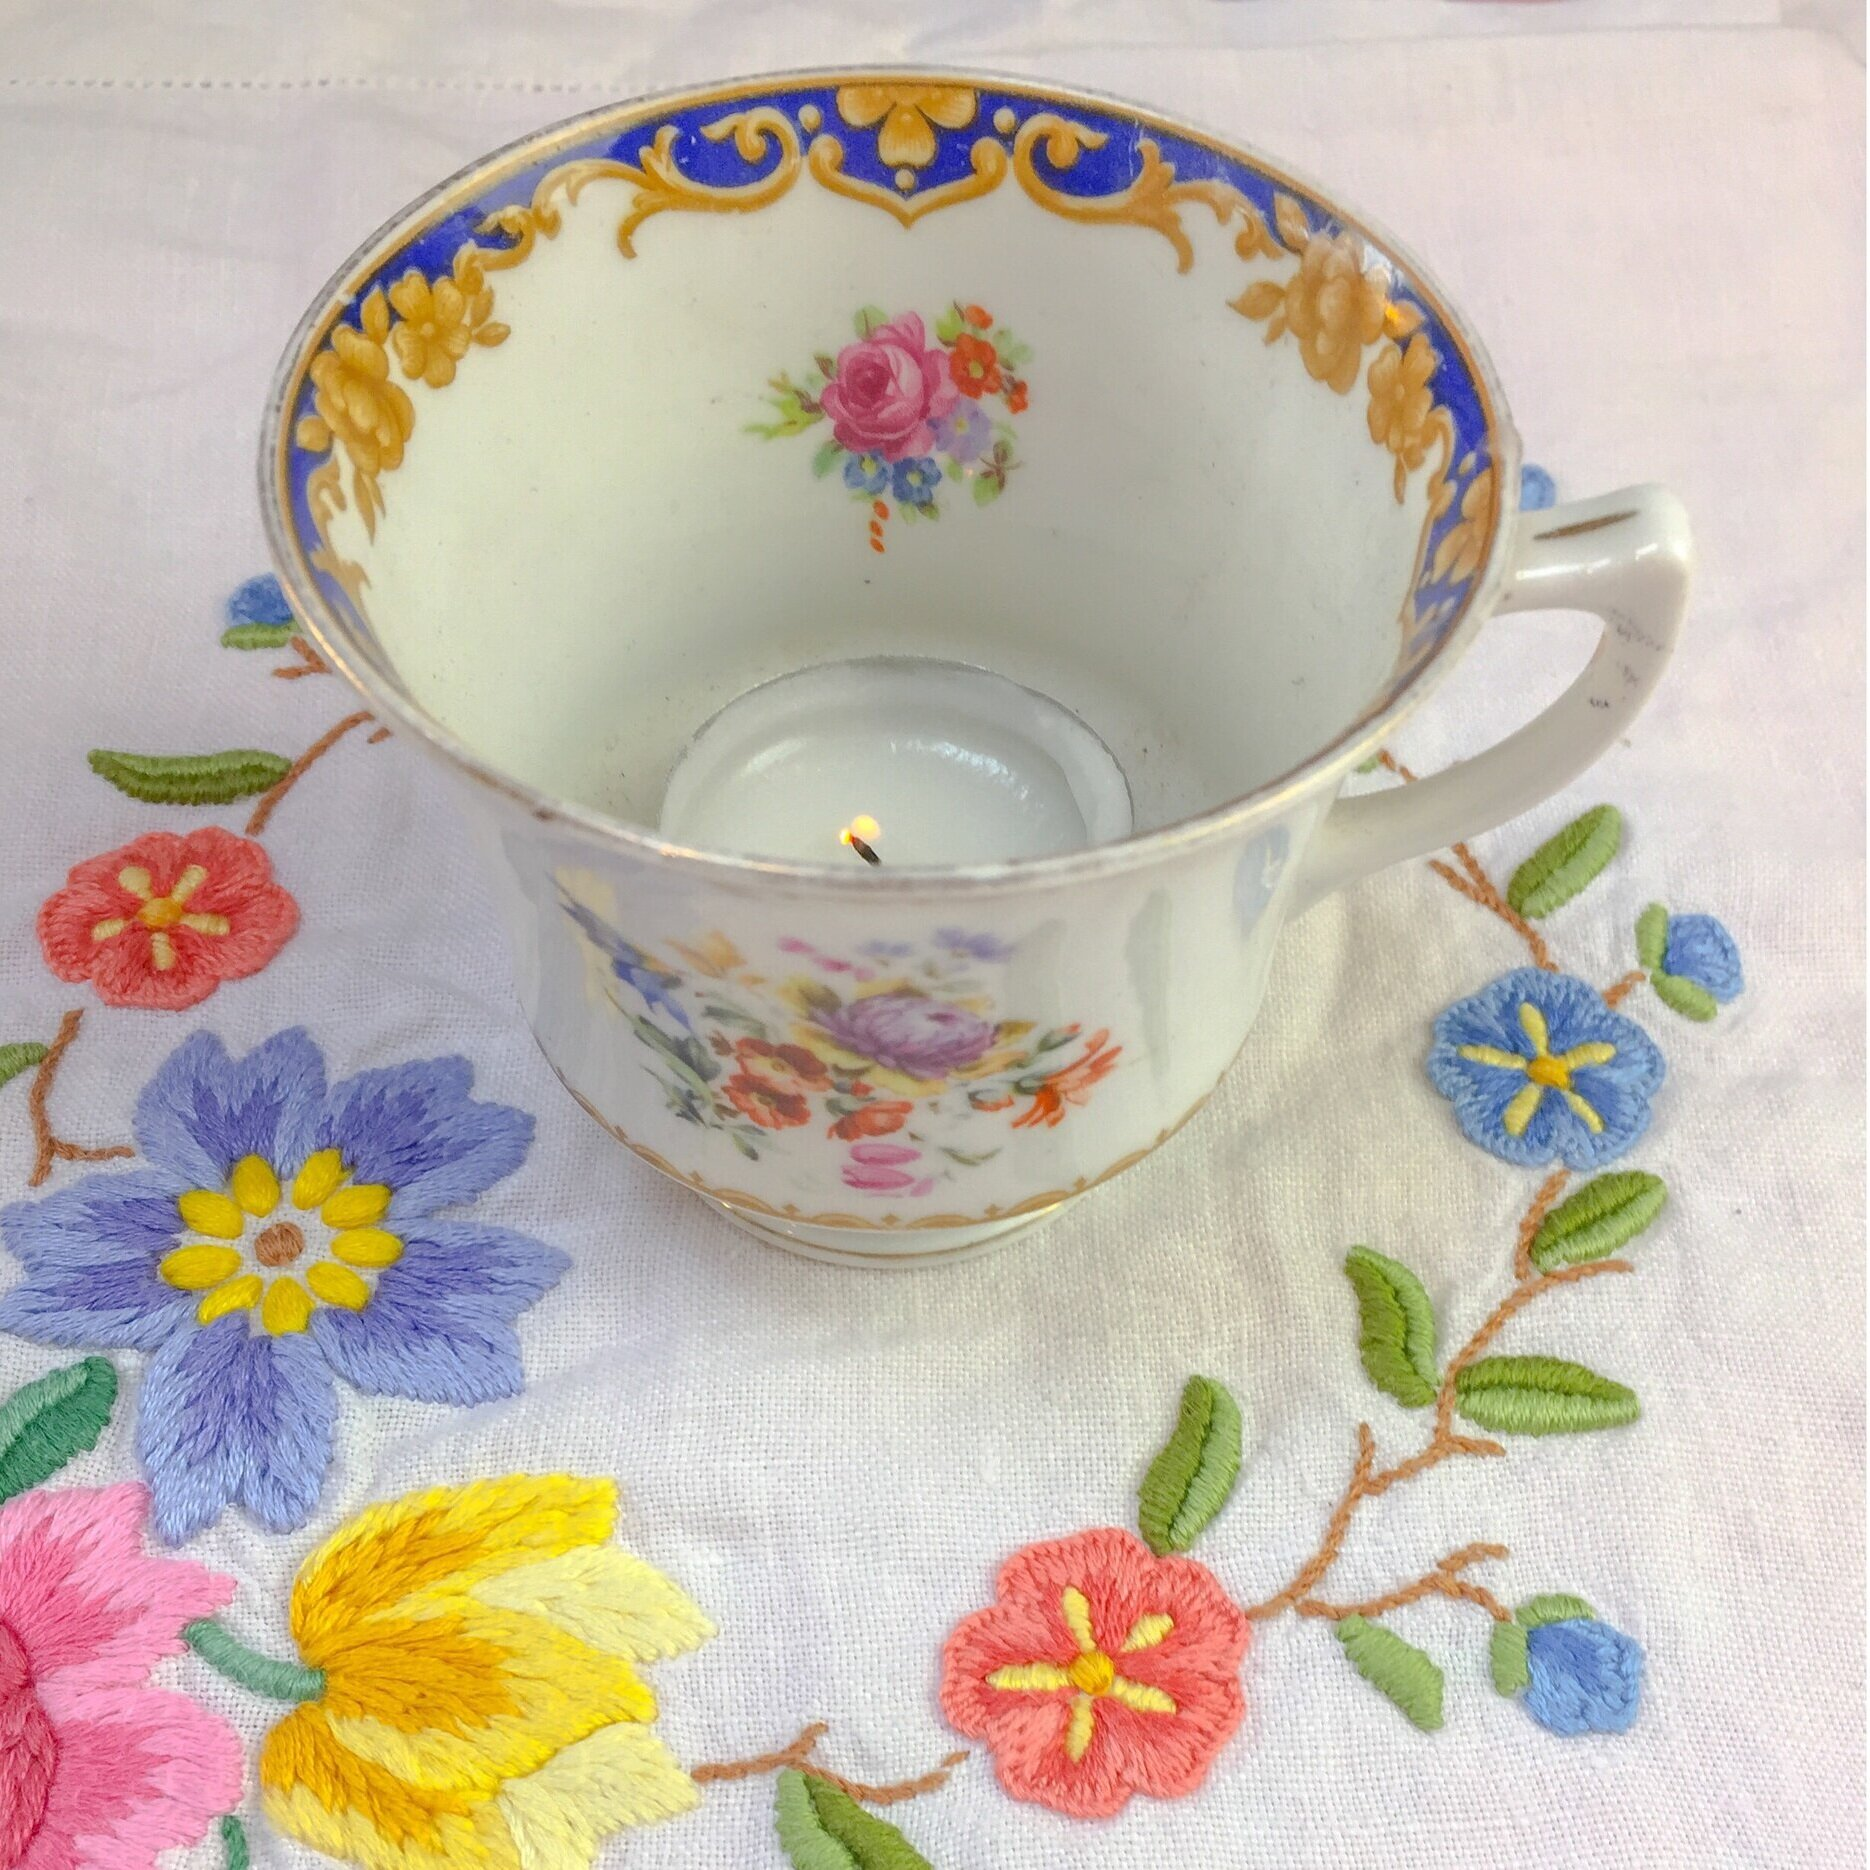 teacup+with+candle+on+pretty+tablecloth.jpg